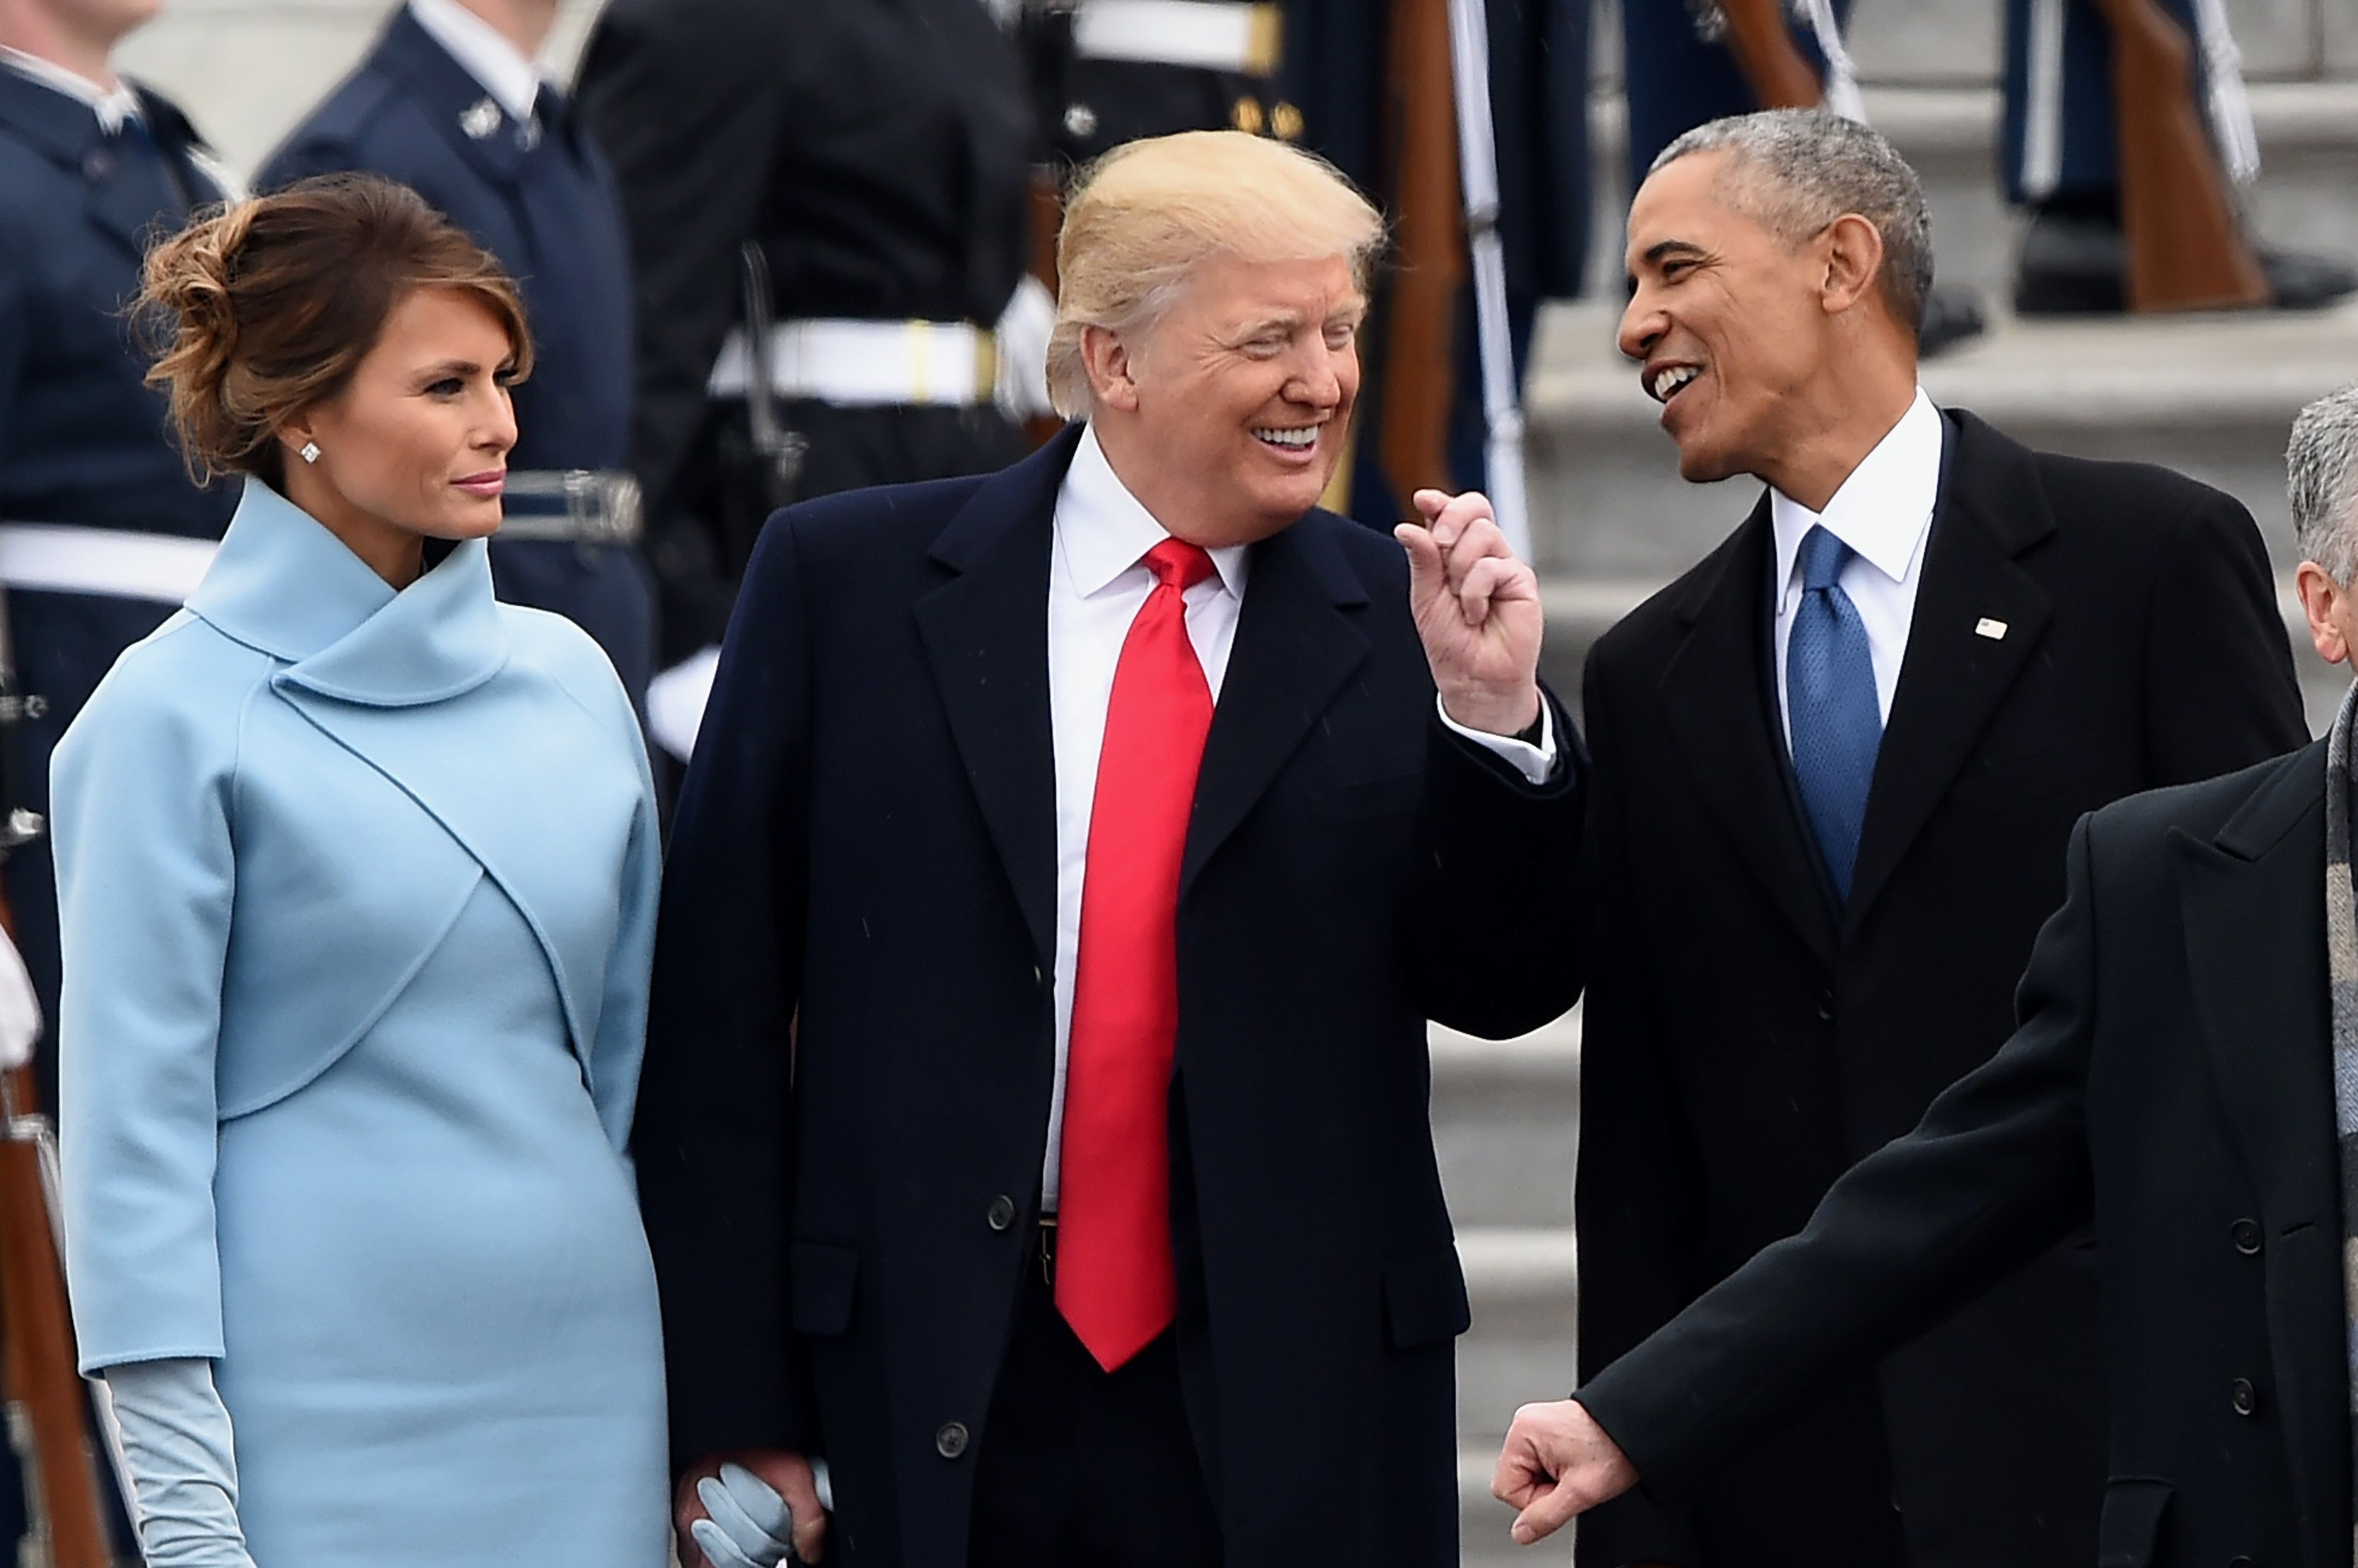 US First Lady Melania Trump looks on as US President Donald Trump and former President Barack Obama talk on the East front steps of the US Capitol after inauguration ceremonies on January 20, 2017 in Washington, DC.  / AFP / Robyn BECK        (Photo credit should read ROBYN BECK/AFP/Getty Images)